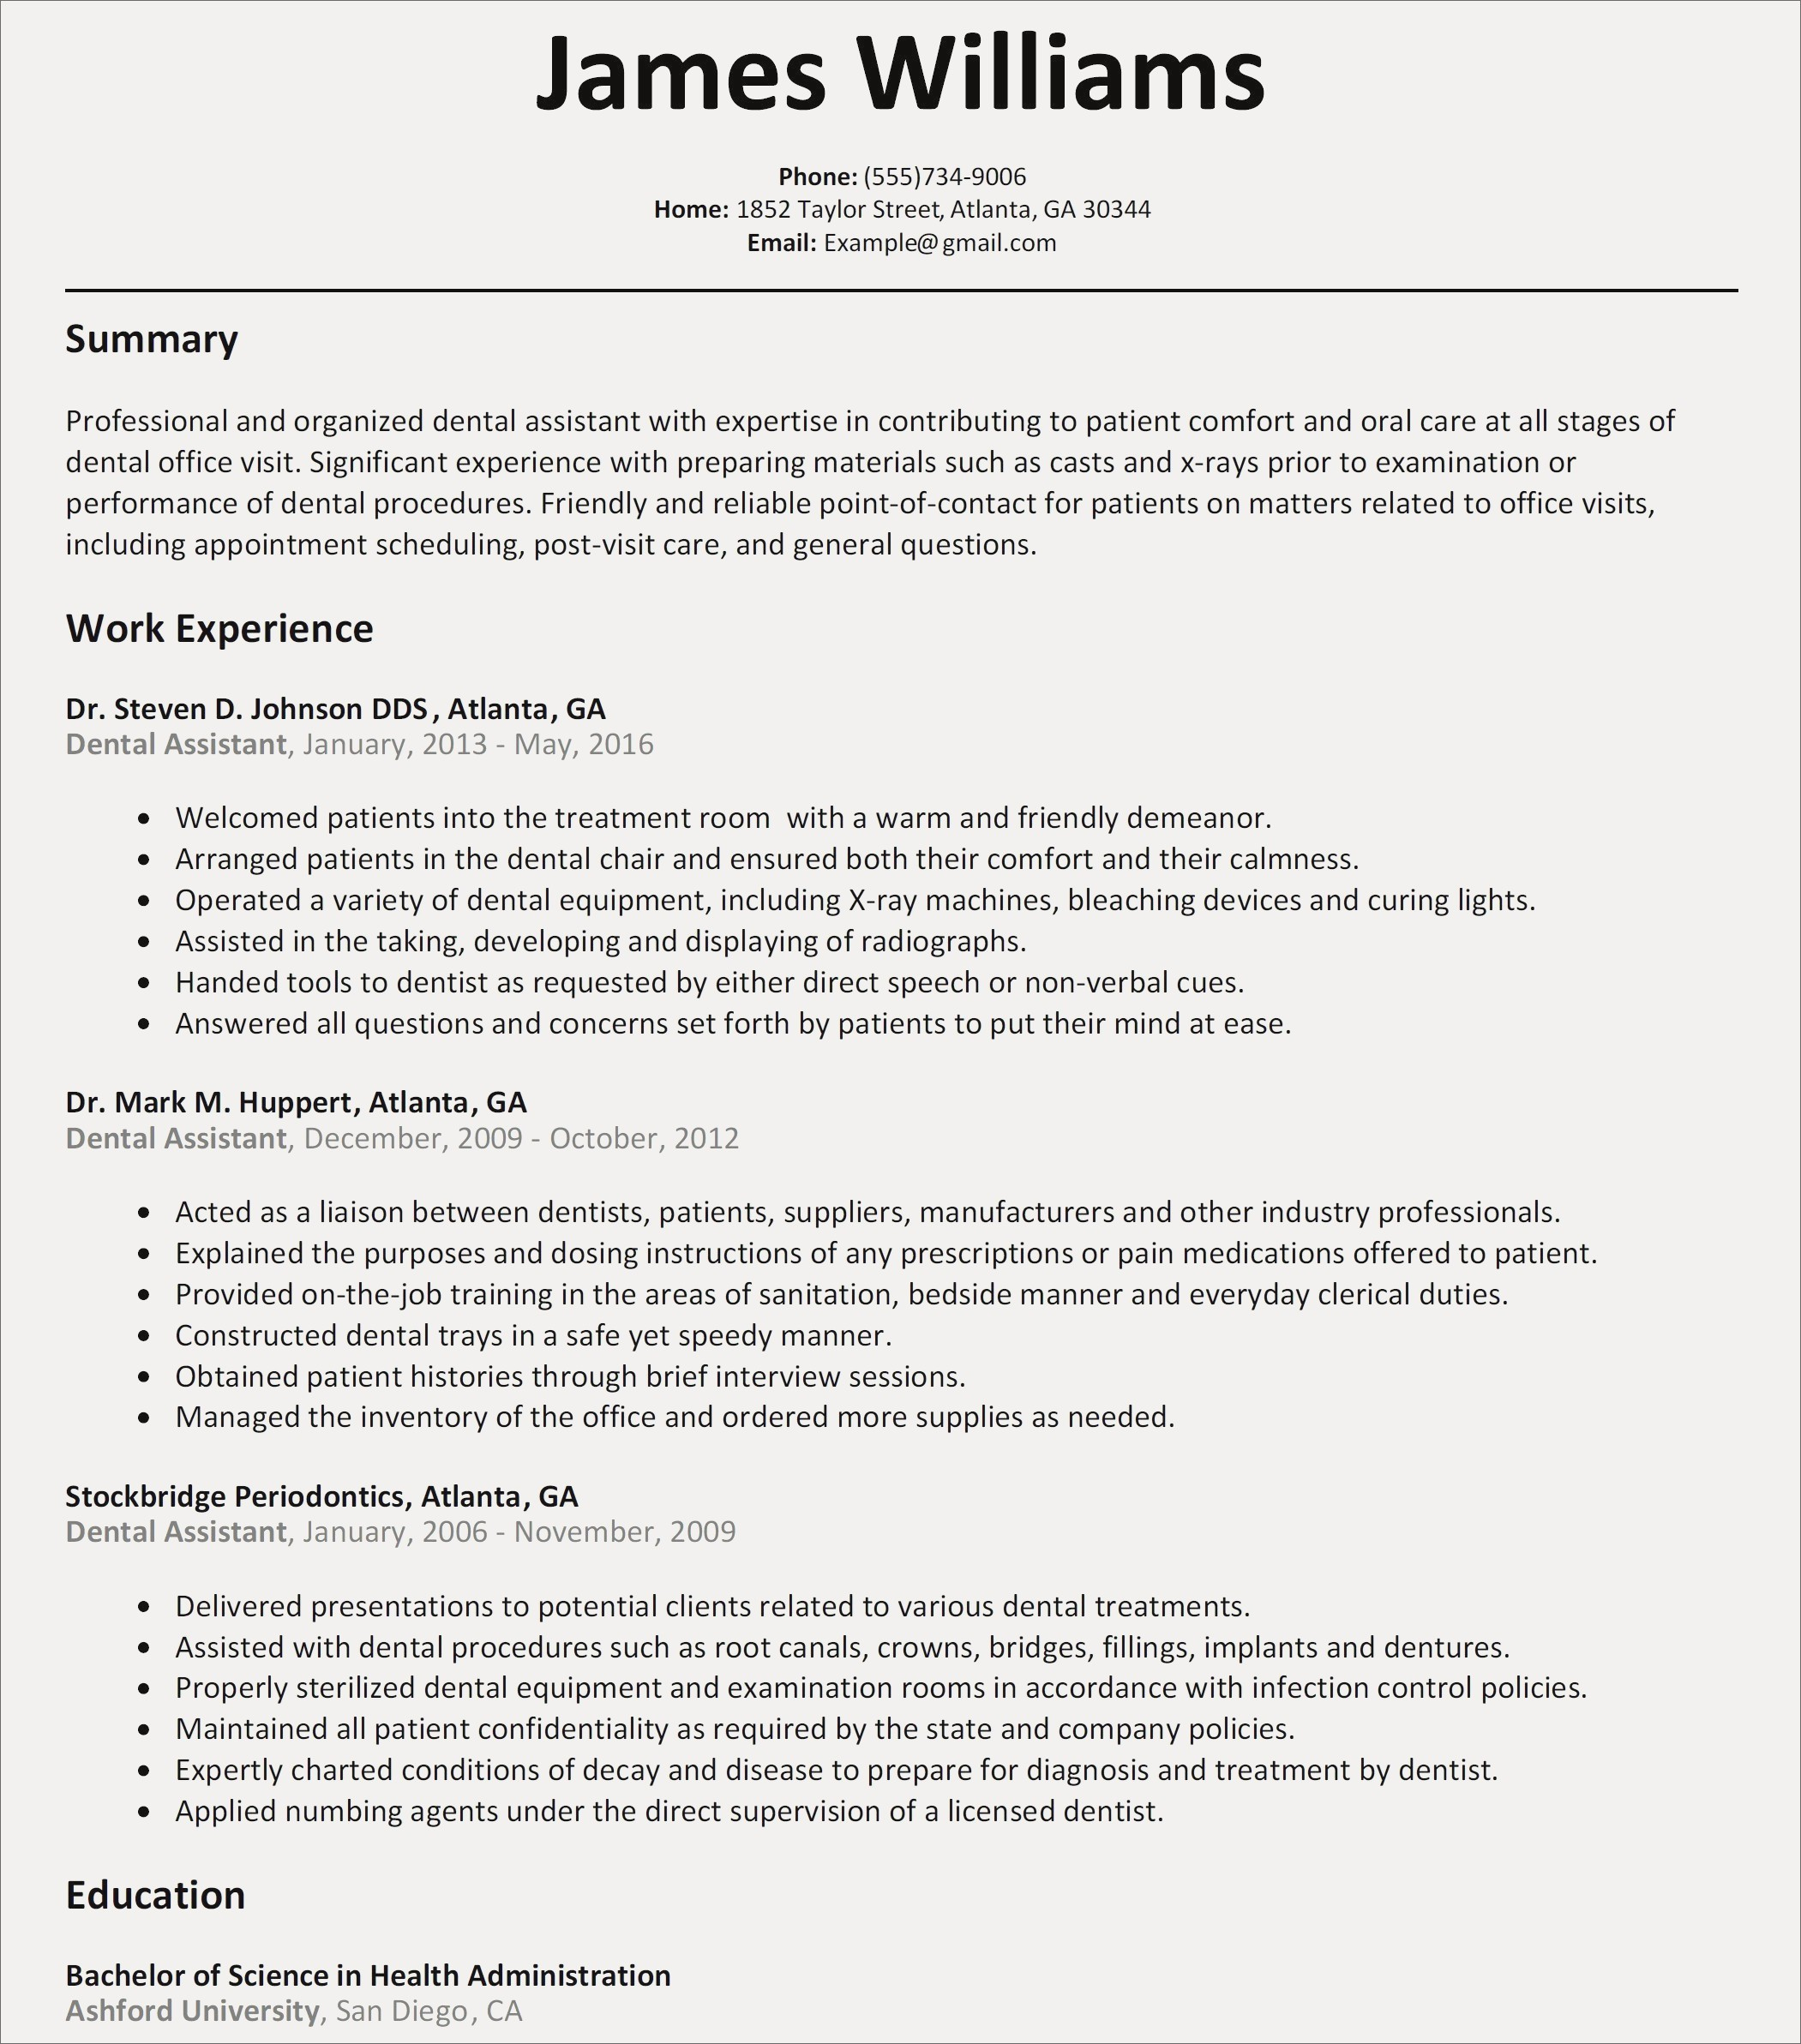 Resume Summary Ideas - Resume Professional Summary Examples New Sample Resumes